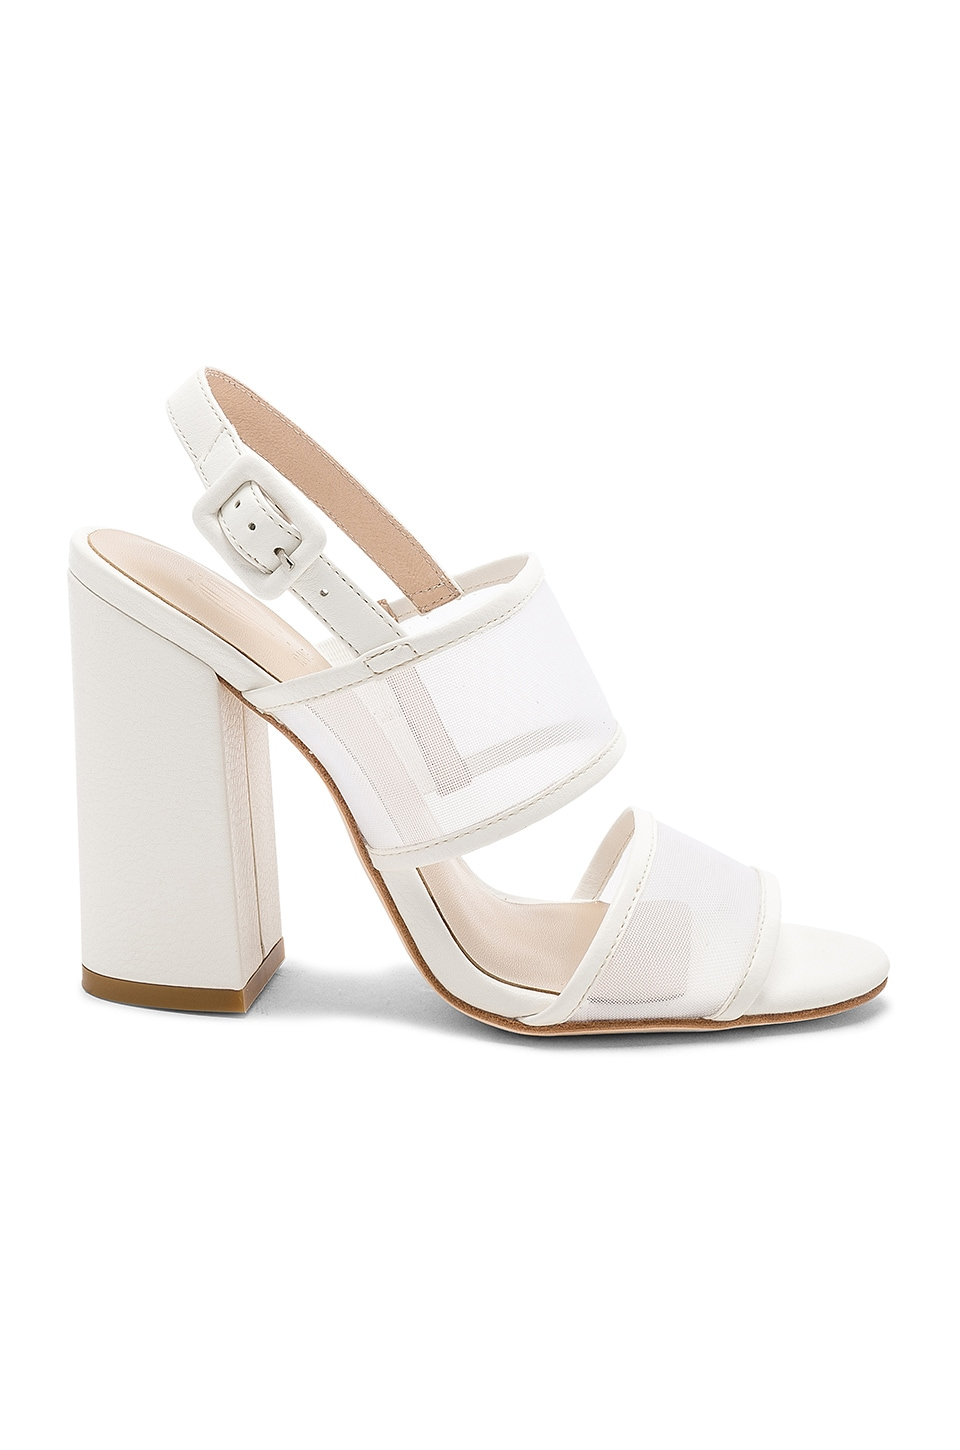 RAYE x House Of Harlow 1960 Sommers Heel in White